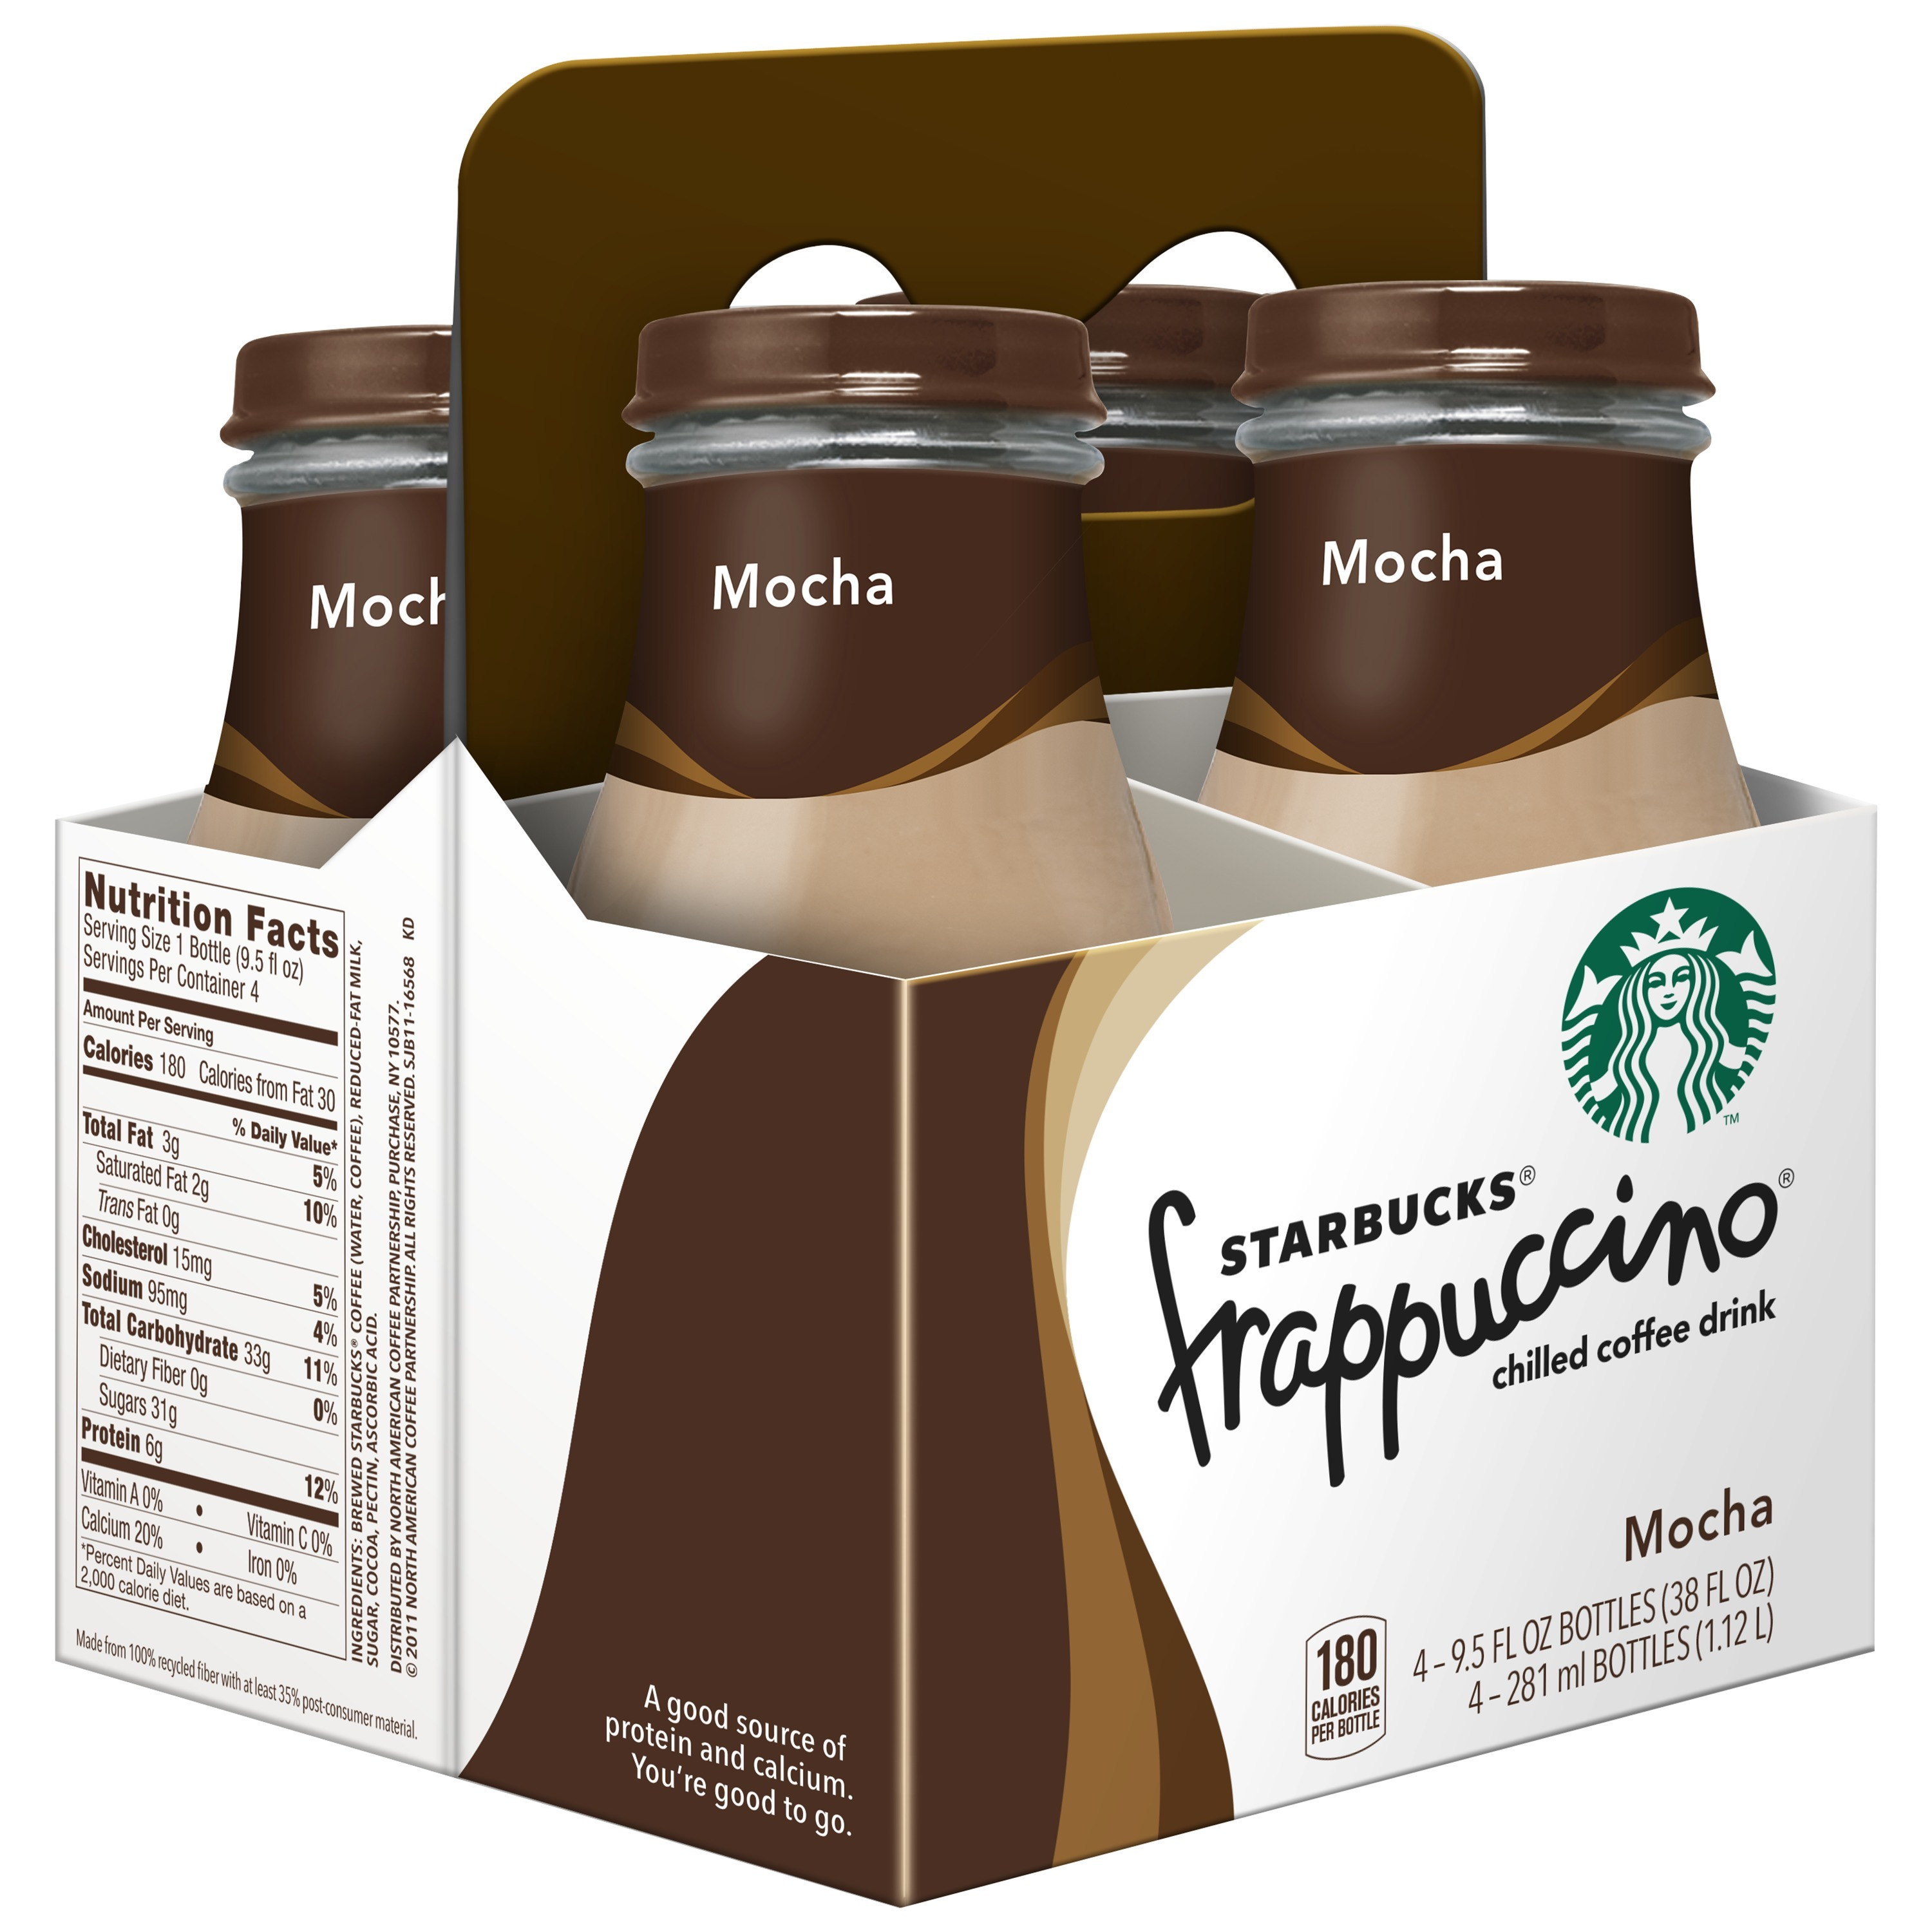 Starbucks Frappuccino Coffee Drink, Mocha, 9.5 oz Bottles, 4 Count